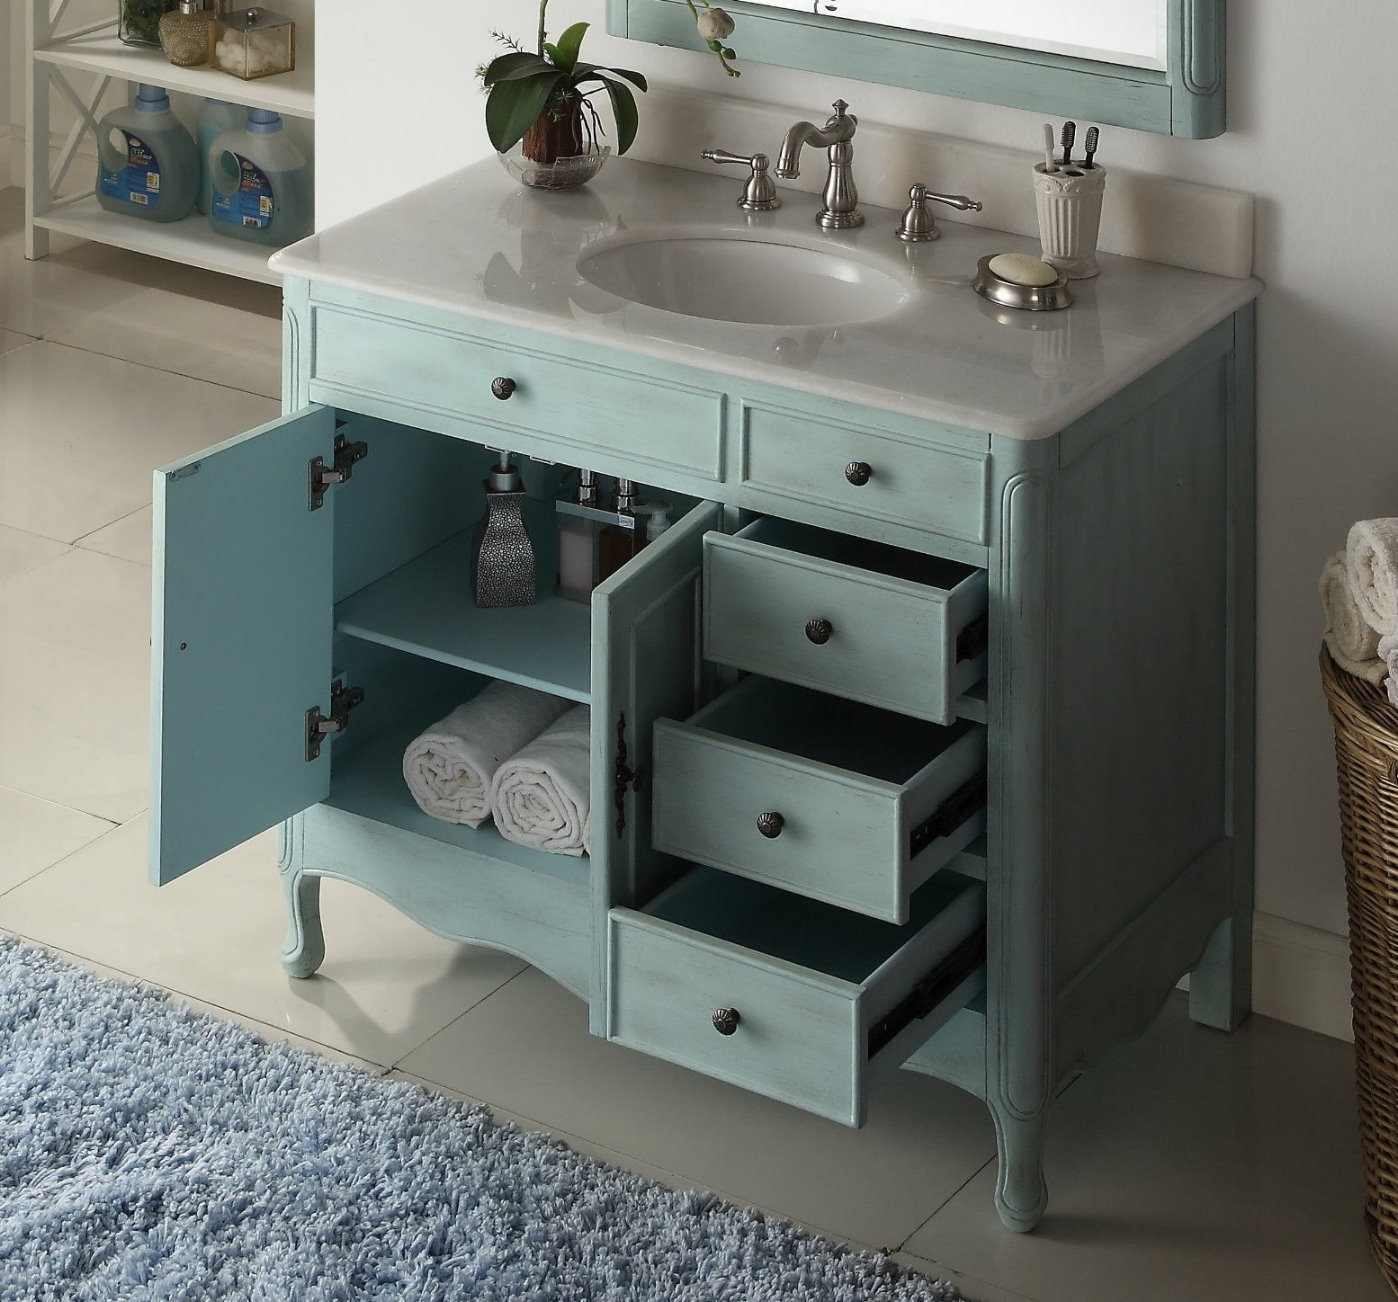 38 Inch Bathroom Vanity With 3 Drawers On The Right